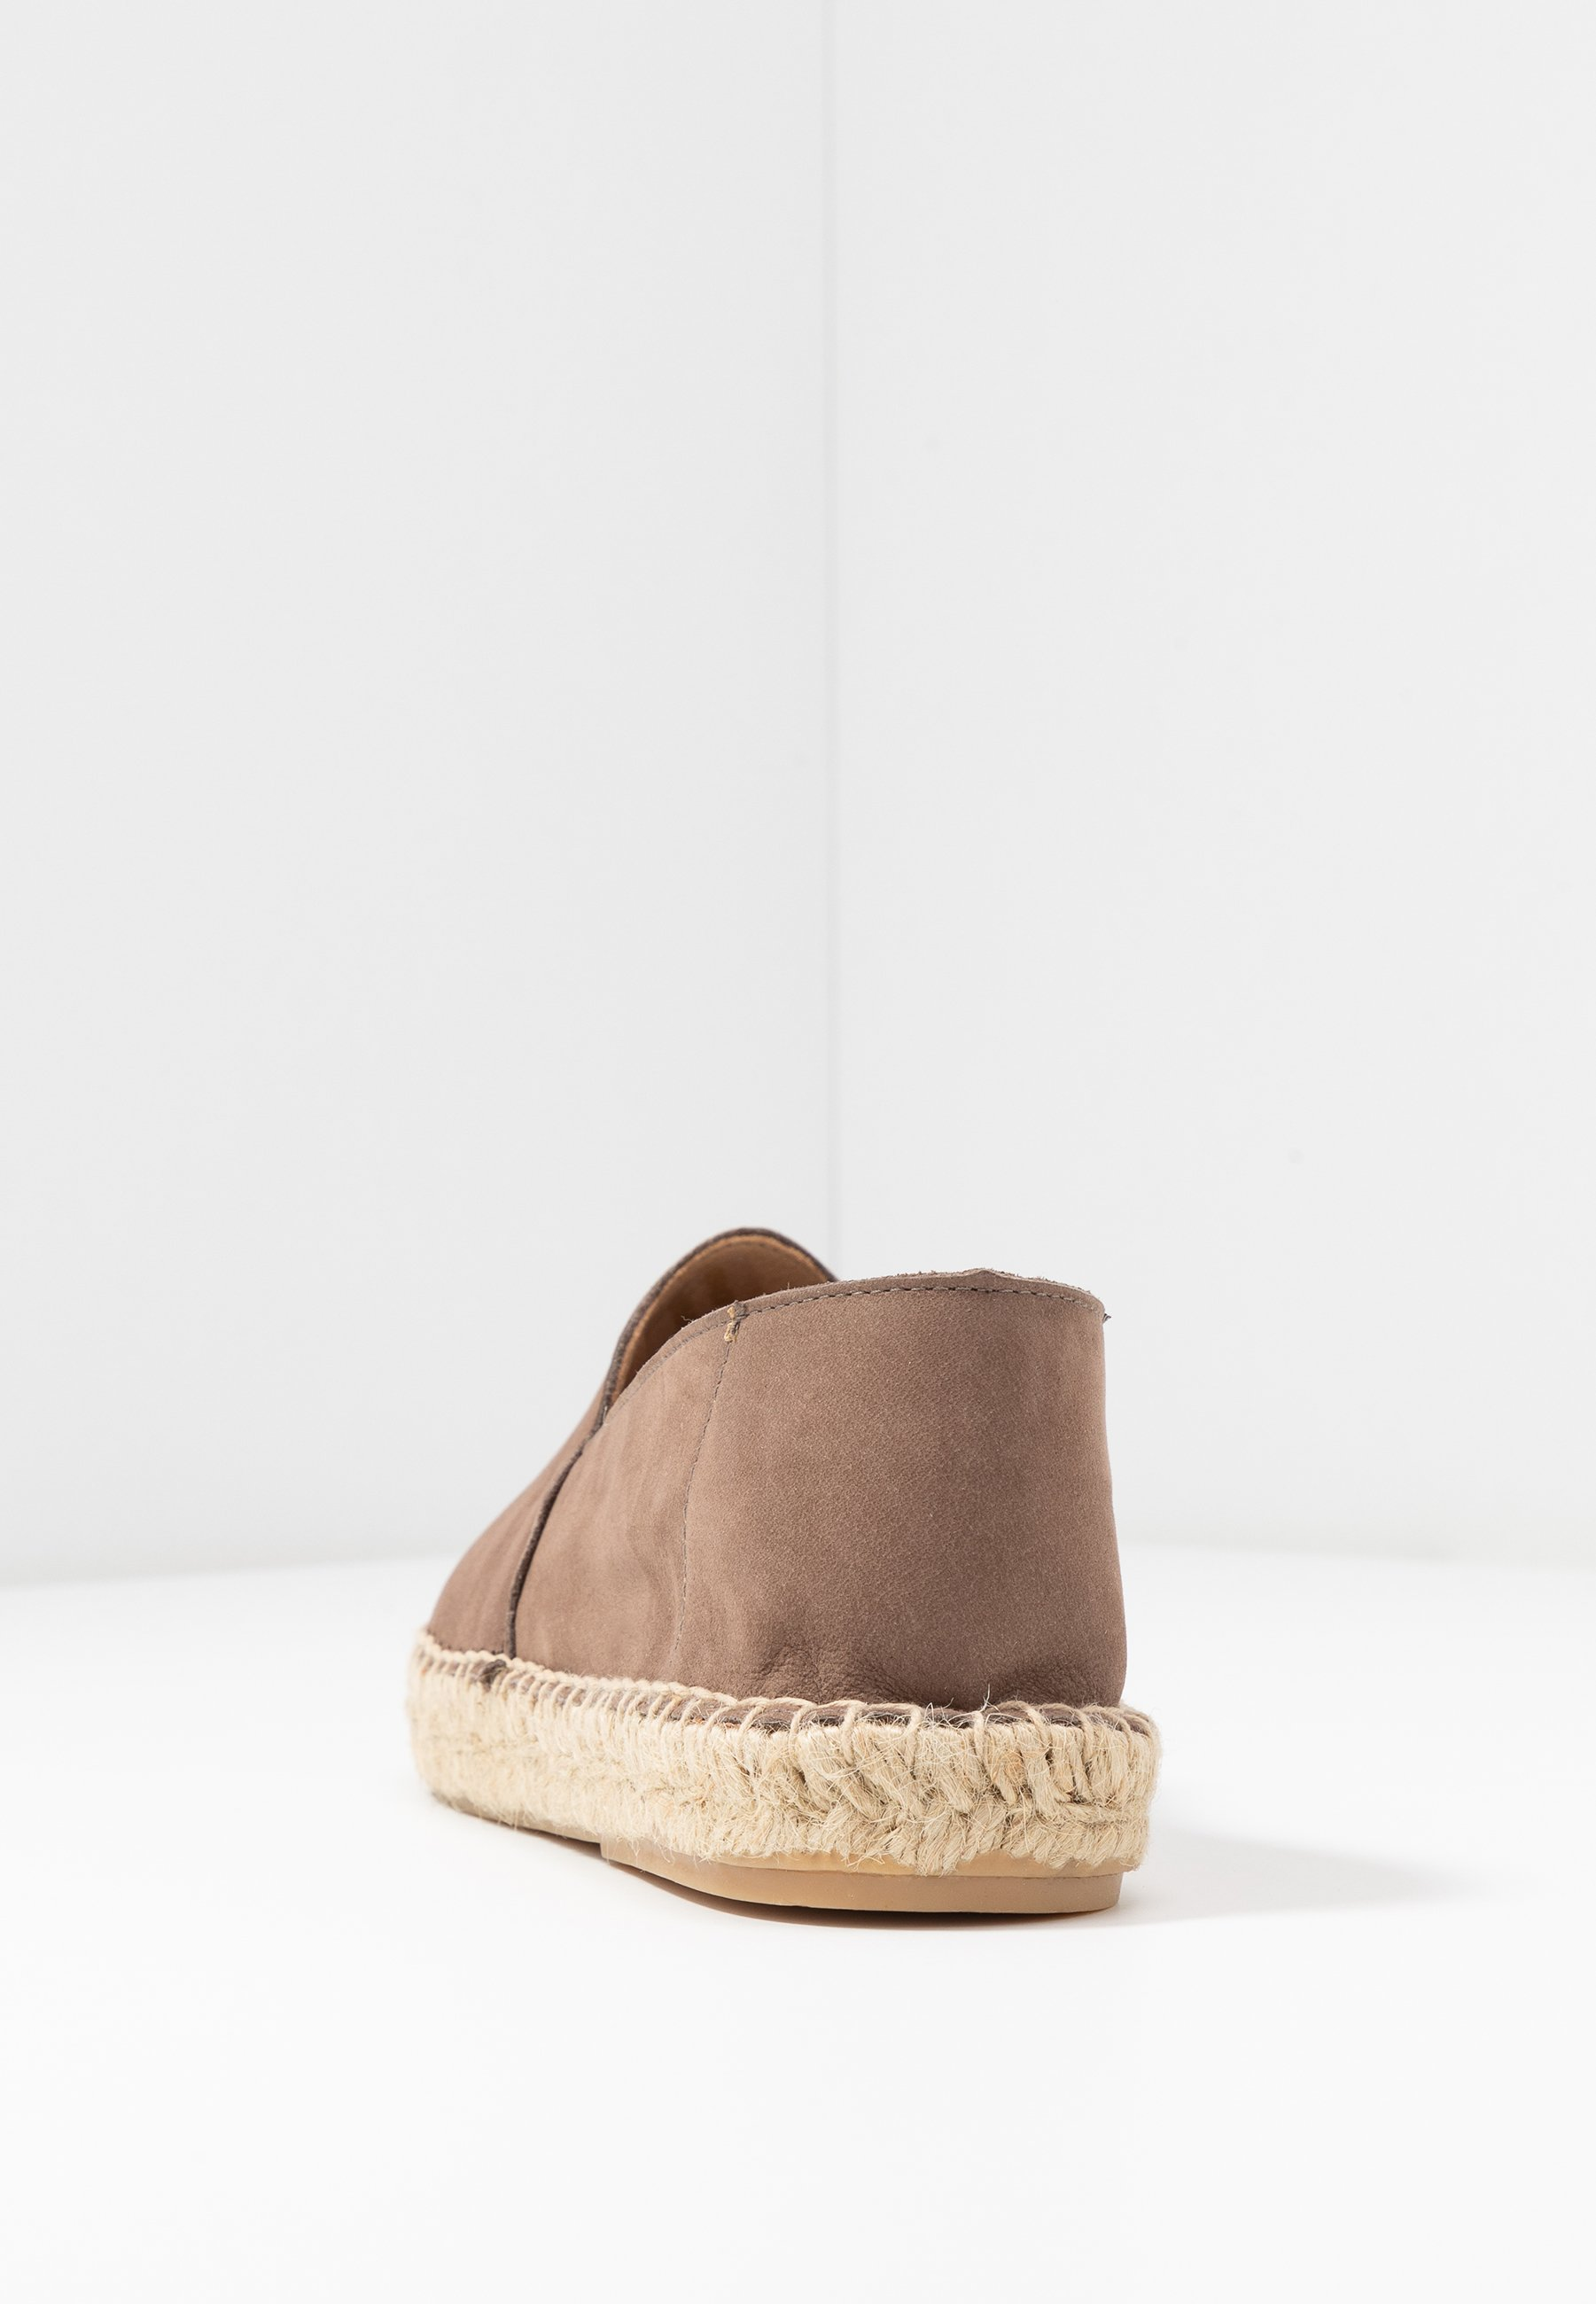 Bianco ESPADRILLES KLASSISCHE - Loafers - light brown